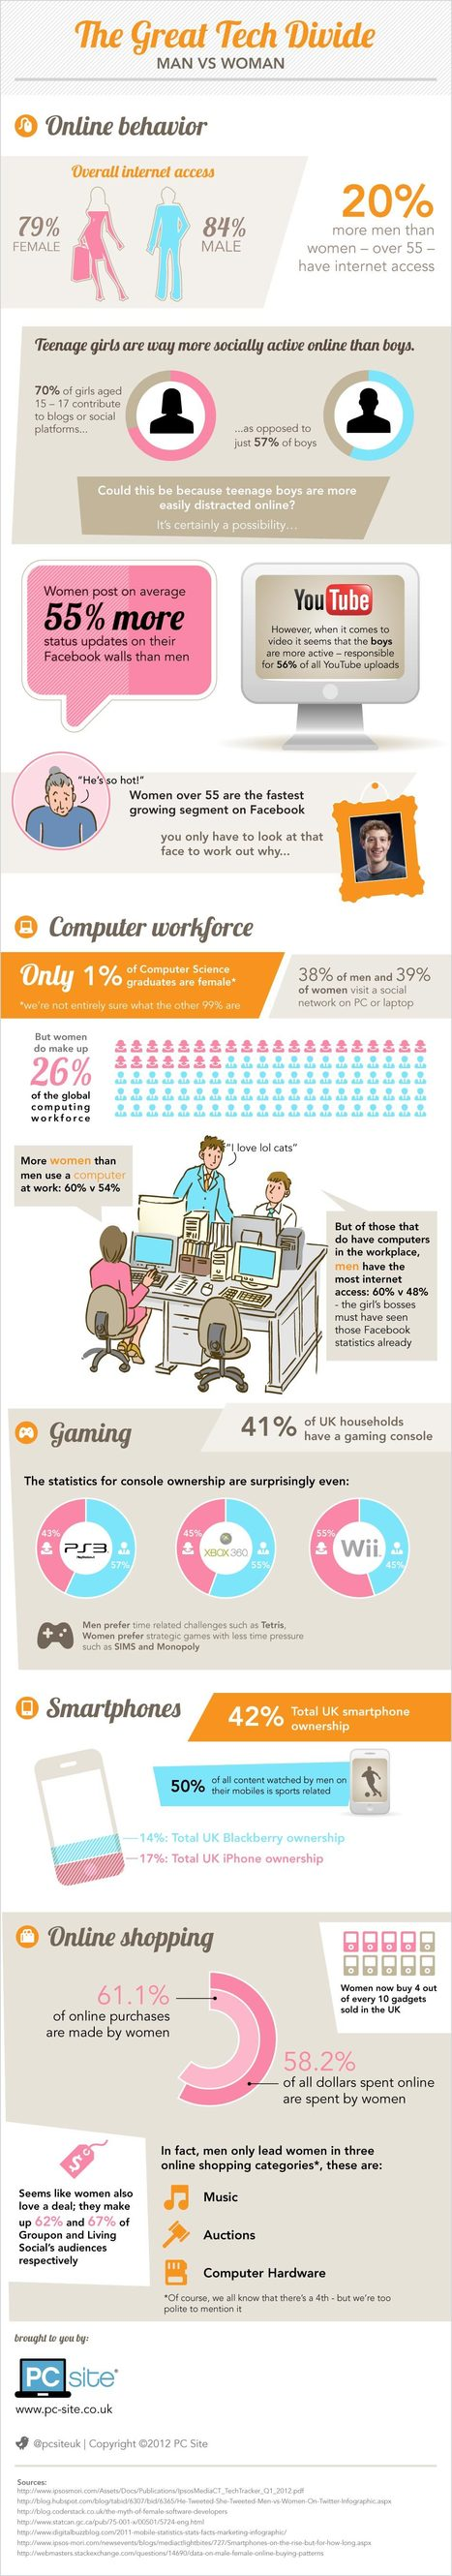 INFOGRAPHIC: The great tech divide: Is the internet just for men? | PC Site | Cloud Central | Scoop.it